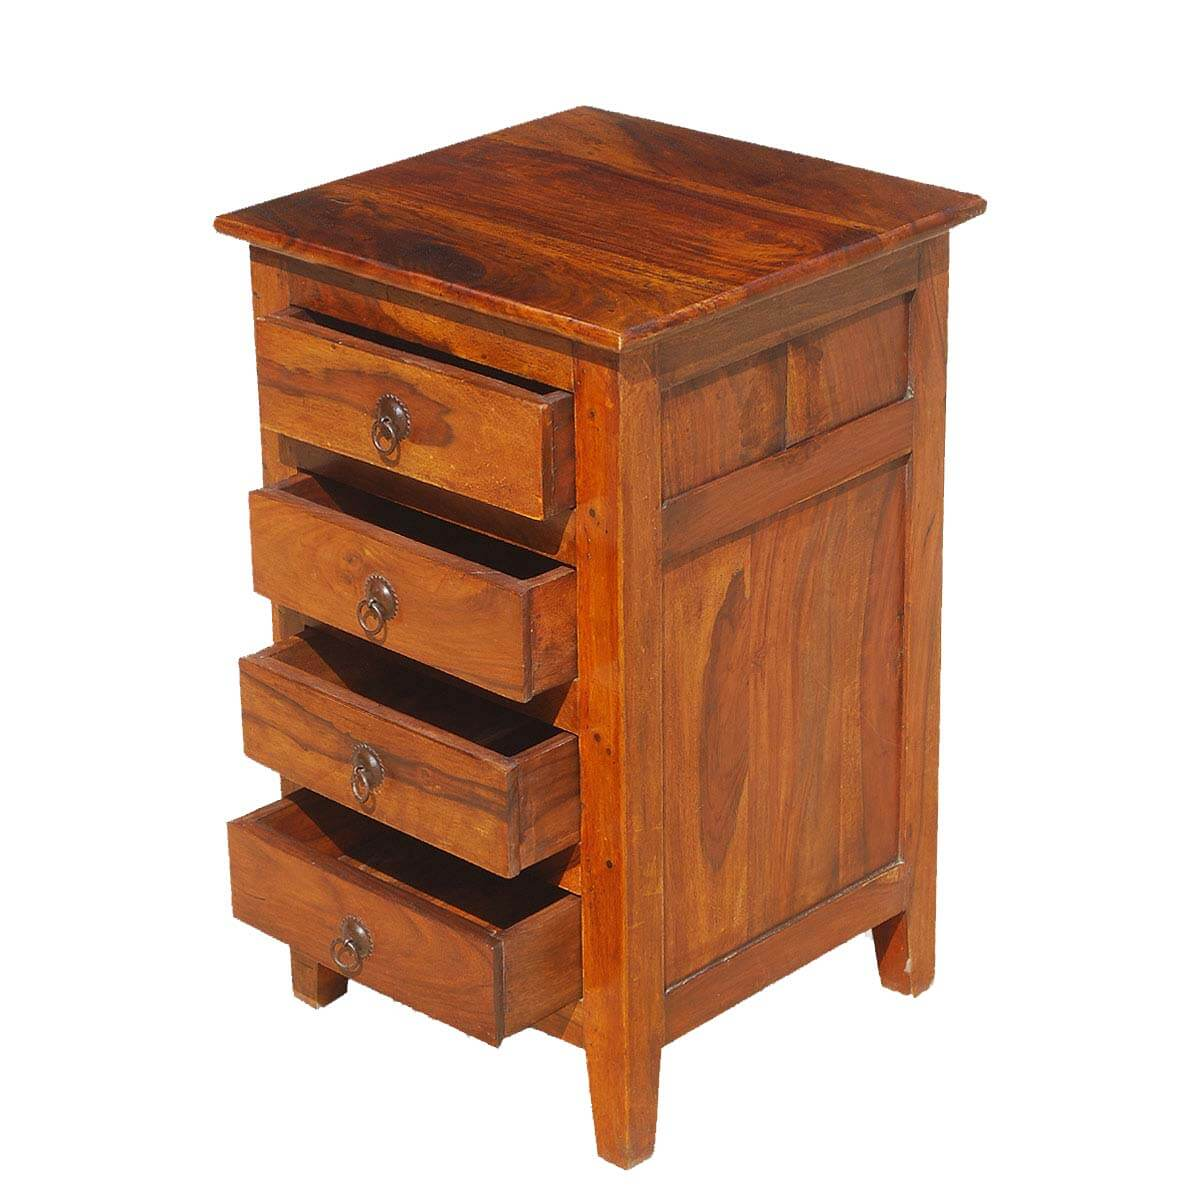 Oklahoma Farmhouse RoseWood Mini Chest Of Drawers End Table